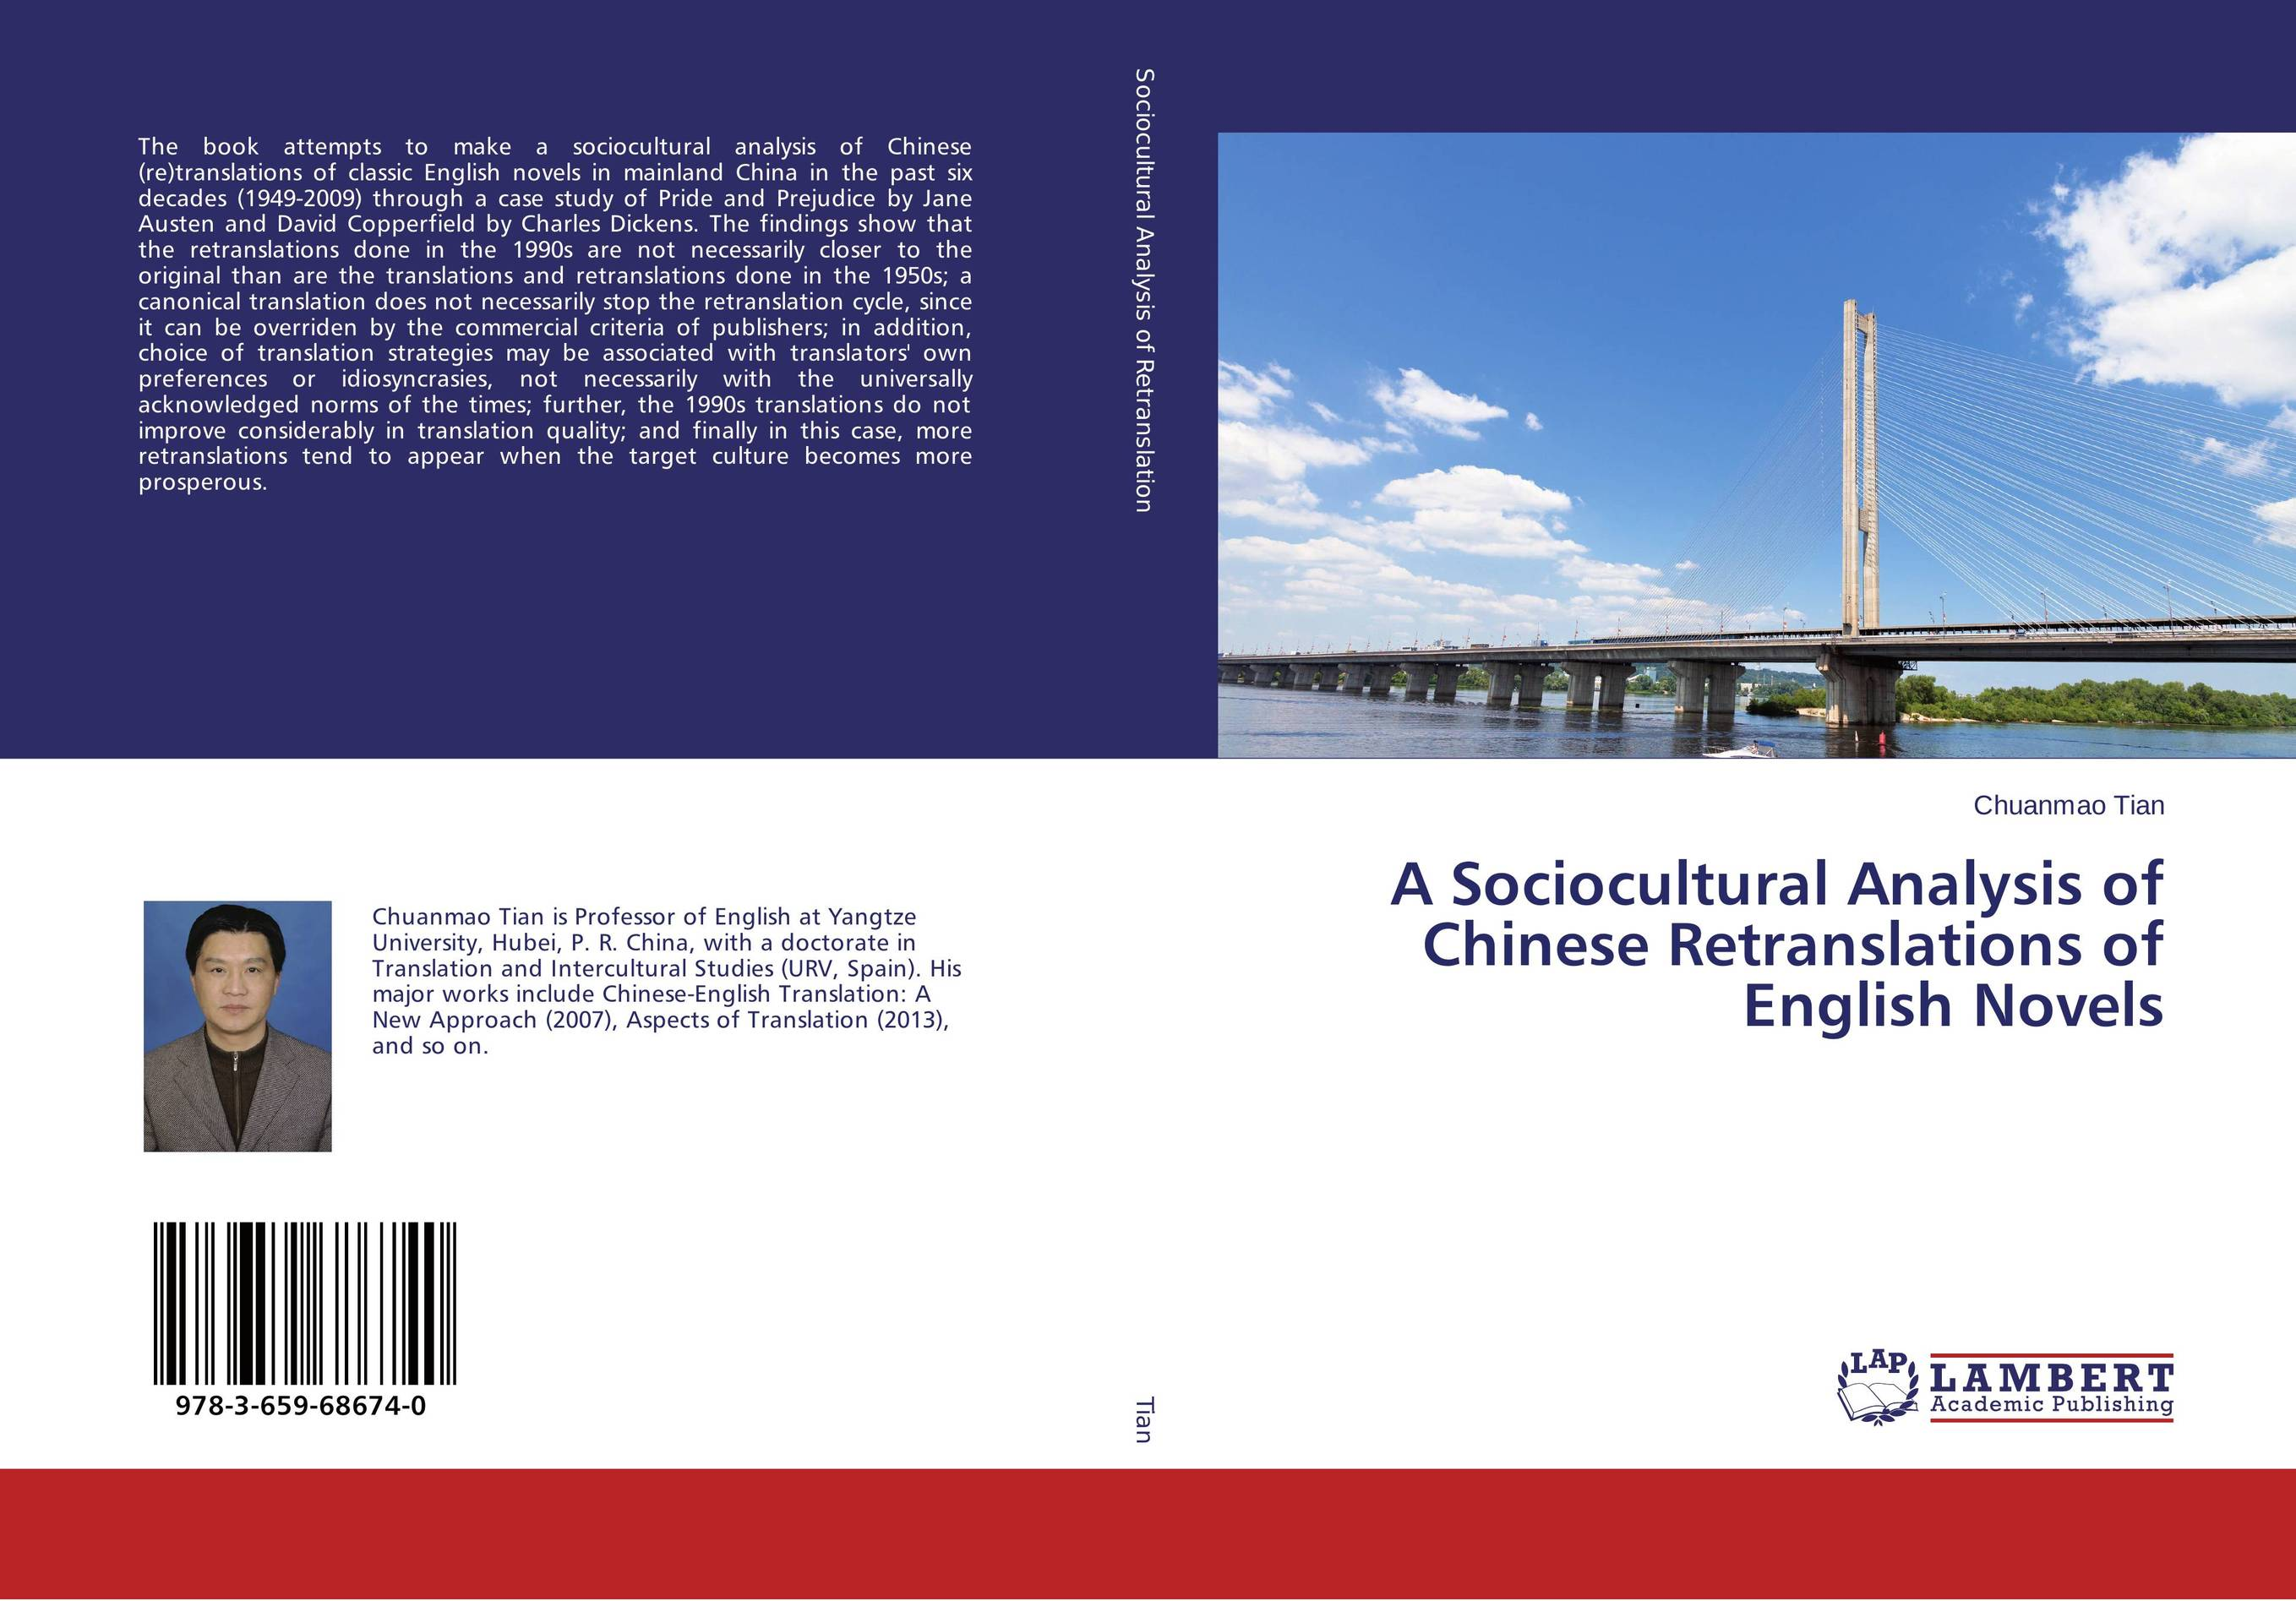 A Sociocultural Analysis of Chinese Retranslations of English Novels e hutchins culture and inference – a trobriand case study